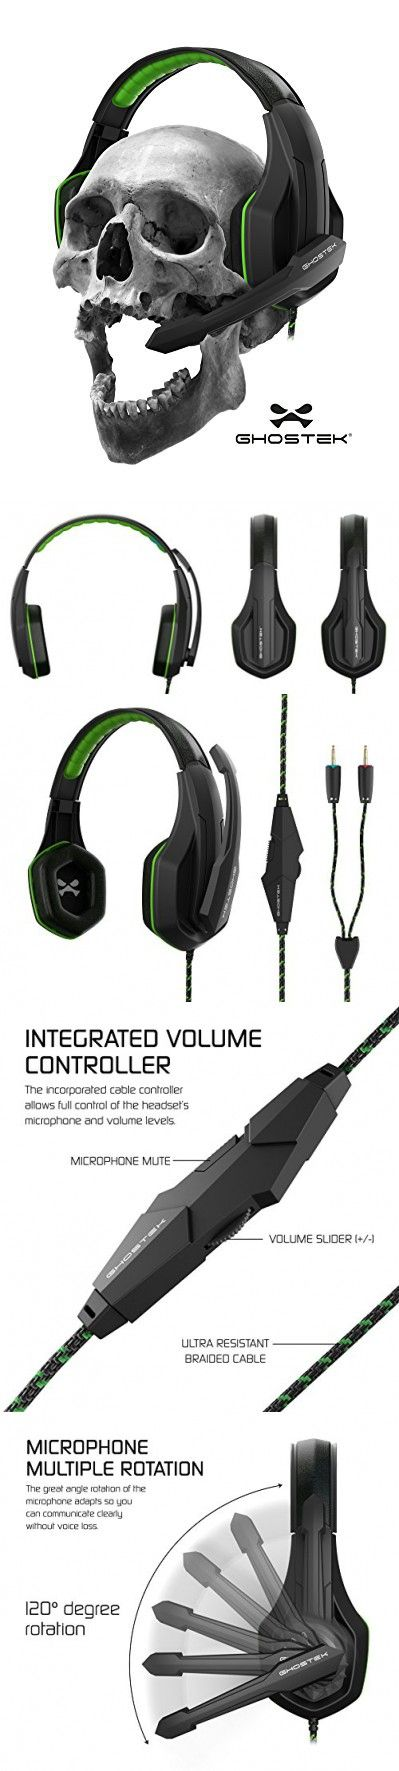 Ghostek Hero Series Gaming Headphones Over-Ear | 3.5MM Jack | PC Video Gaming |120° Microphone Rotation + Mute Switch | Integrated Volume Control | Ultra Resistant Braided Cable (Green)